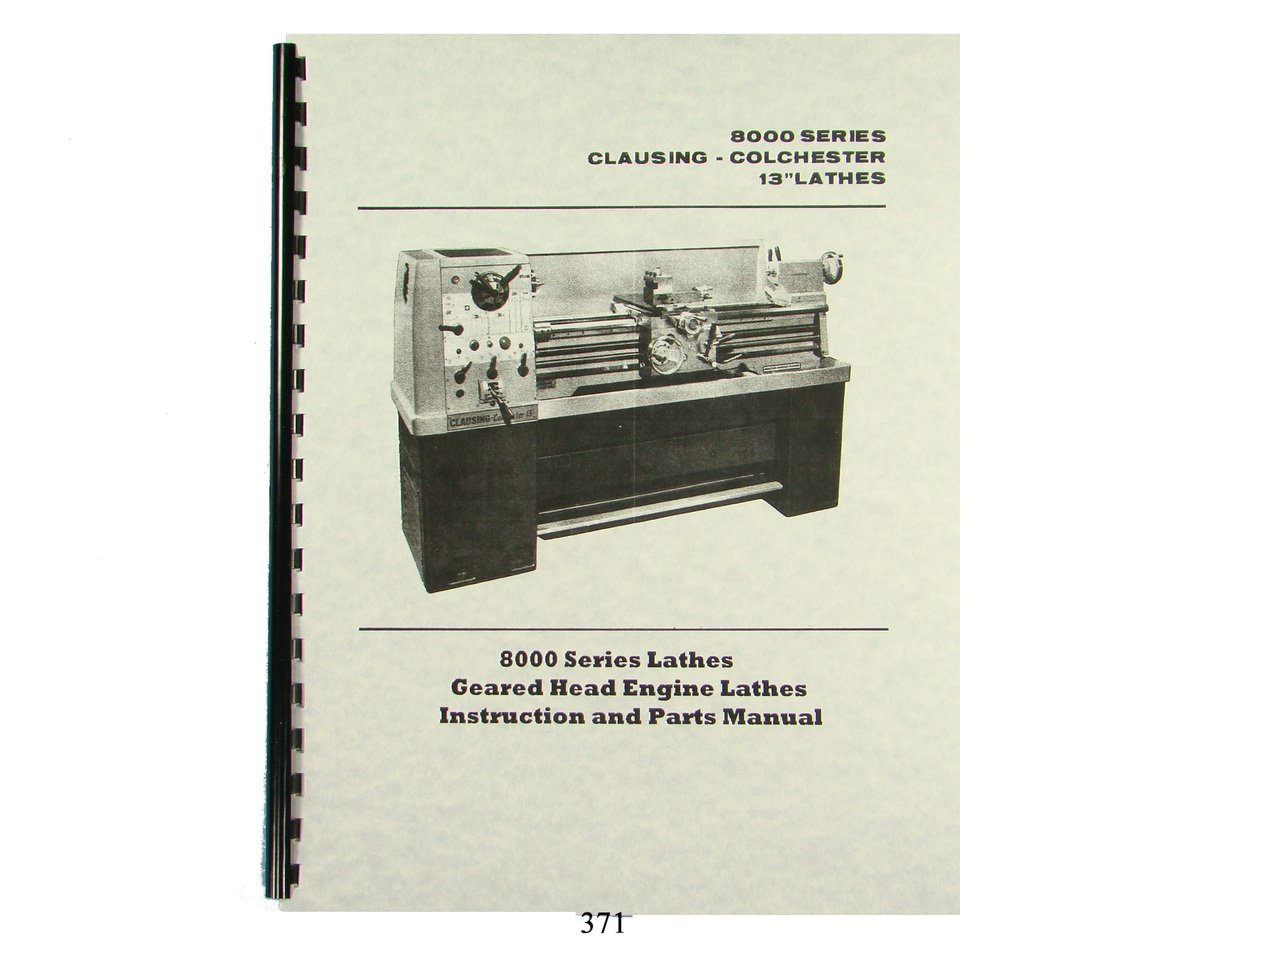 "Clausing Colchester 13"" Lathe 8000 Series Instruction & Parts List Manual:  Clausing: Amazon.com: Books"